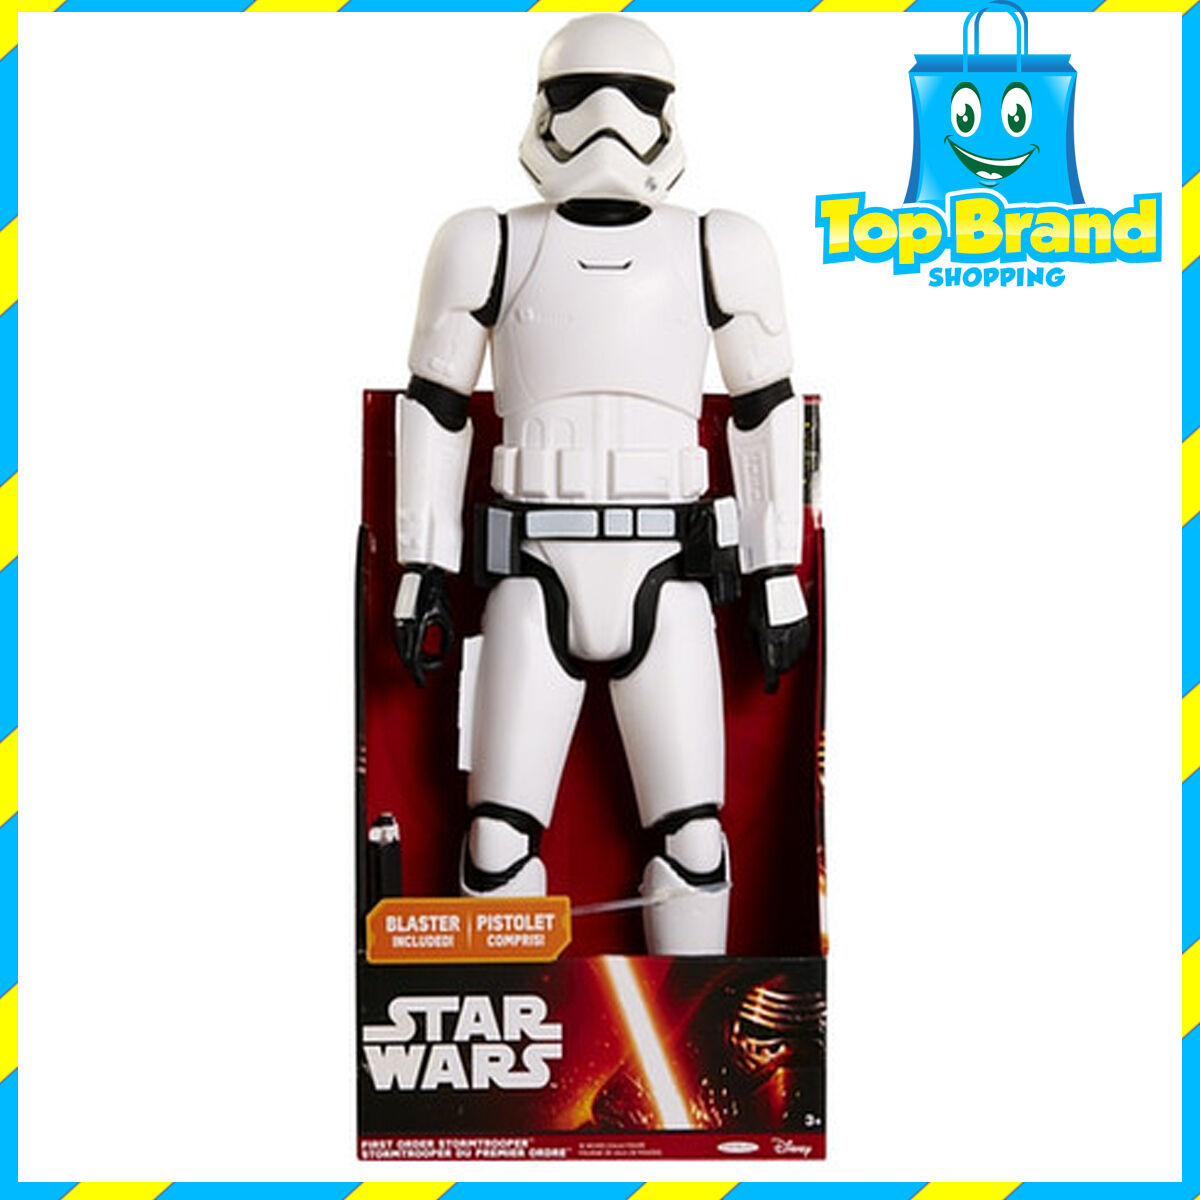 STAR WARS FIRST ORDER STORMTROOPER - 18 INCHES (45CM) TALL